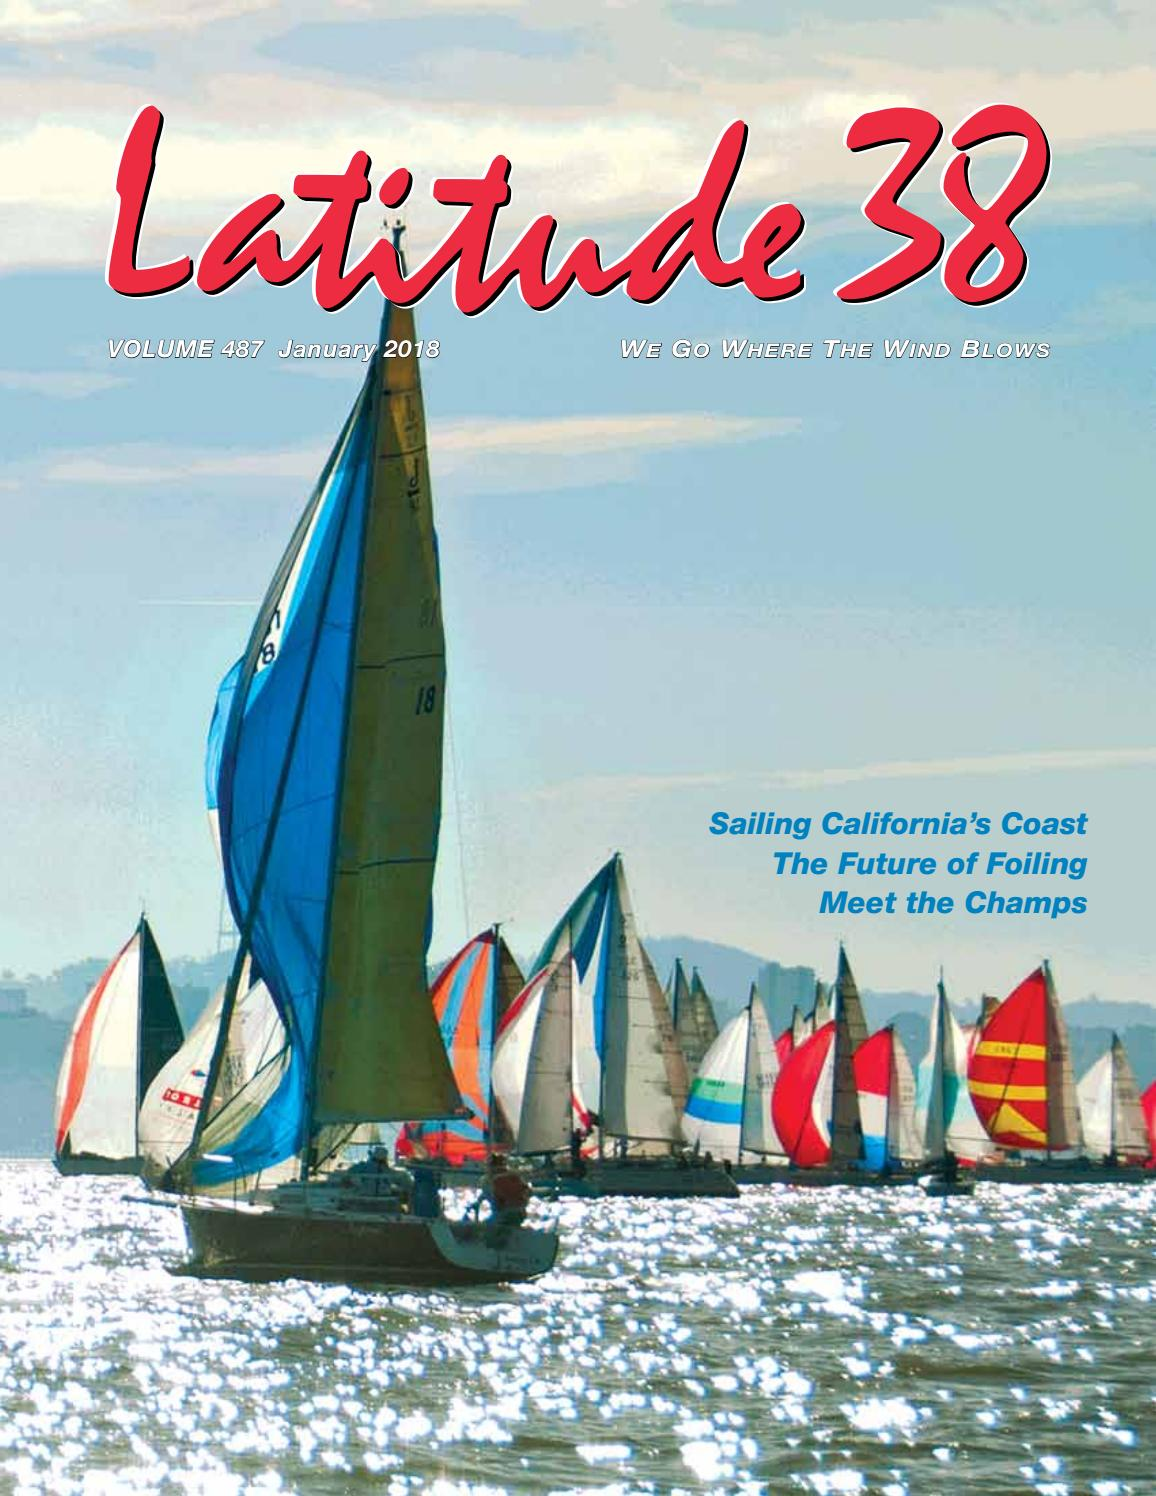 Laude 38 Jan 2018 by Laude 38 Media, LLC - issuu on boat electrical panel, sailing boats parts diagrams, boat motor wiring, boat grounding diagrams, boat wiring diagram printable, boat starter wiring diagram, boat circuit diagram, basic ac electrical power diagrams, marine electrical panel diagrams, boat gauge wiring diagram, basic electrical schematic diagrams, lund boat diagrams, square d electrical panels diagrams, boat construction diagram, boat wire diagrams, boat electrical systems, boat wiring harness, tracker boat electrical diagrams, boat tach wiring diagram, boat diagrams basic,